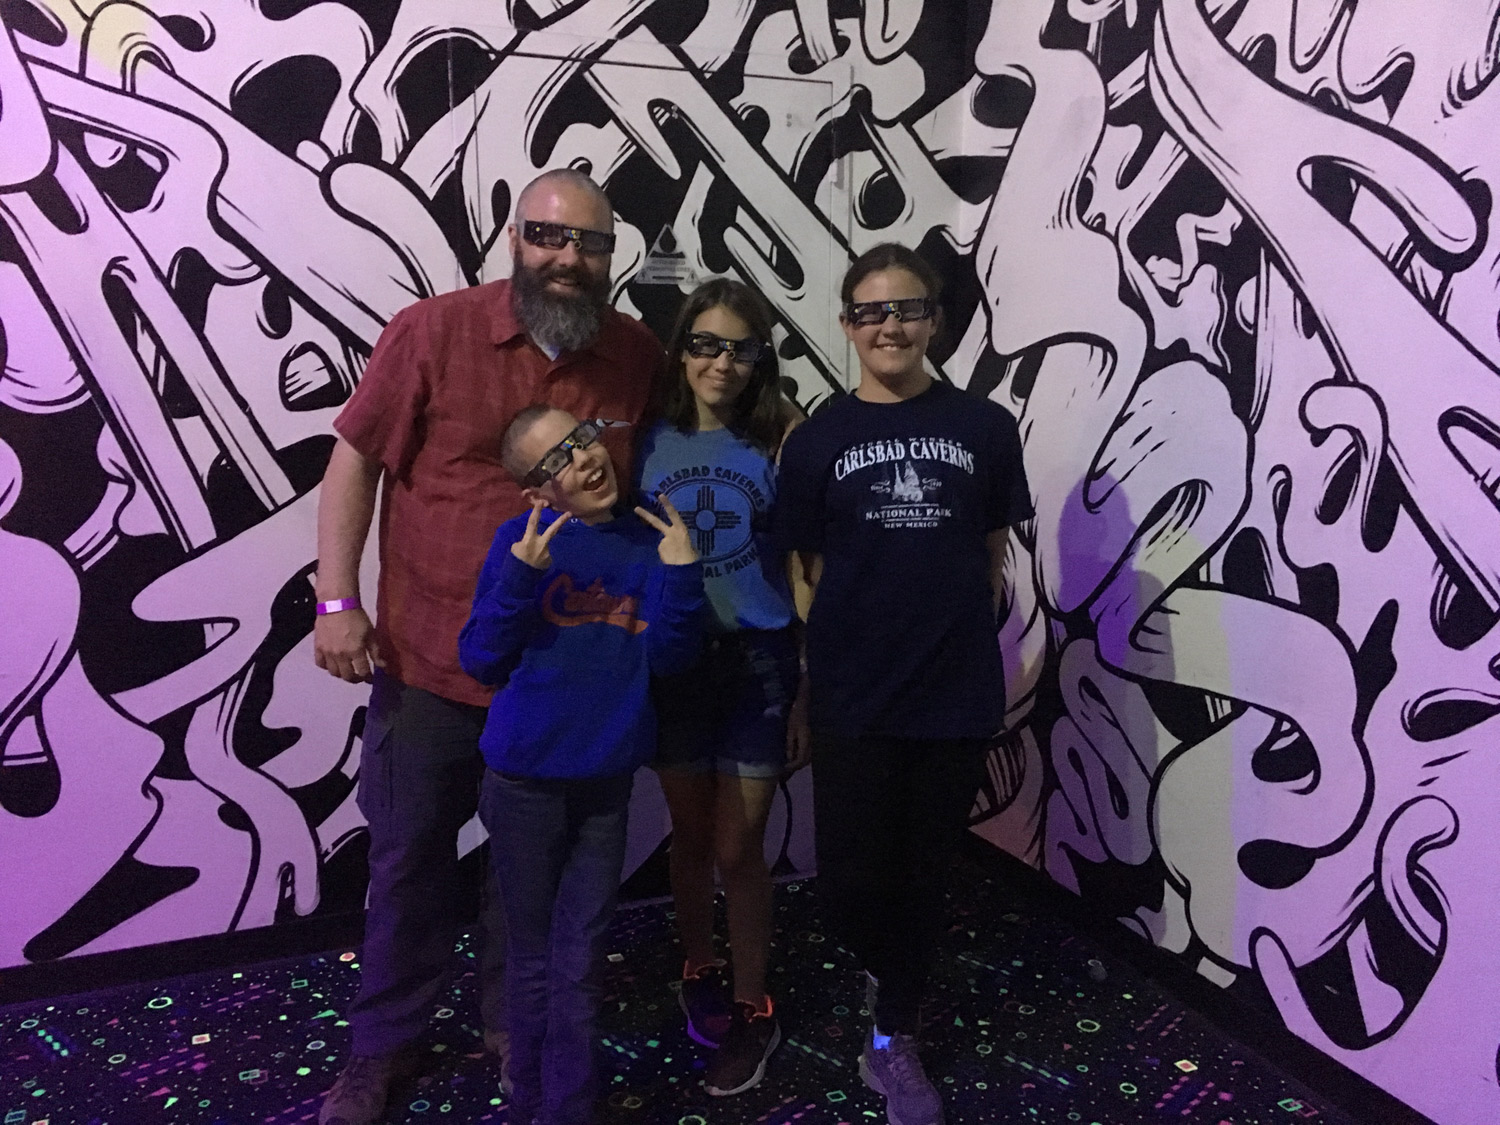 Not sure how to describe Meow Wolf, but it was a favorite stop.